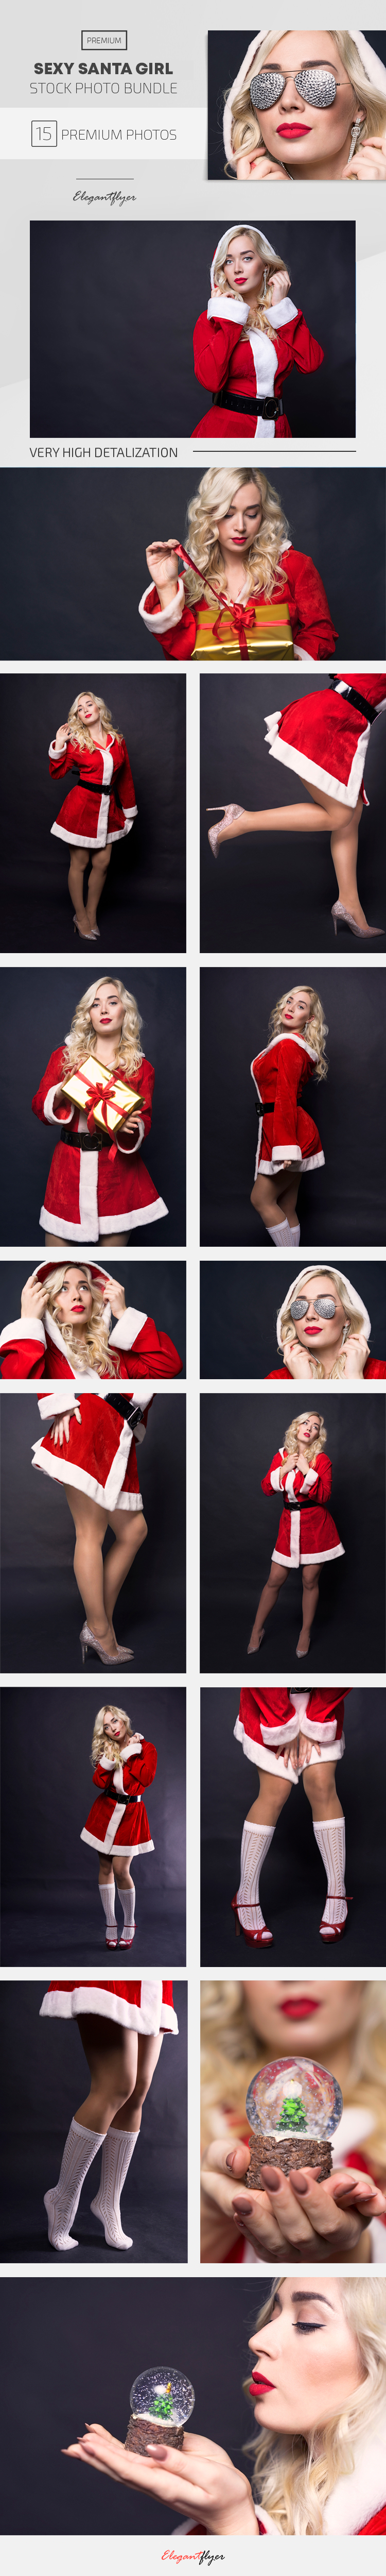 Sexy Santa Girl – 15 Premium Stock Photos Bundle